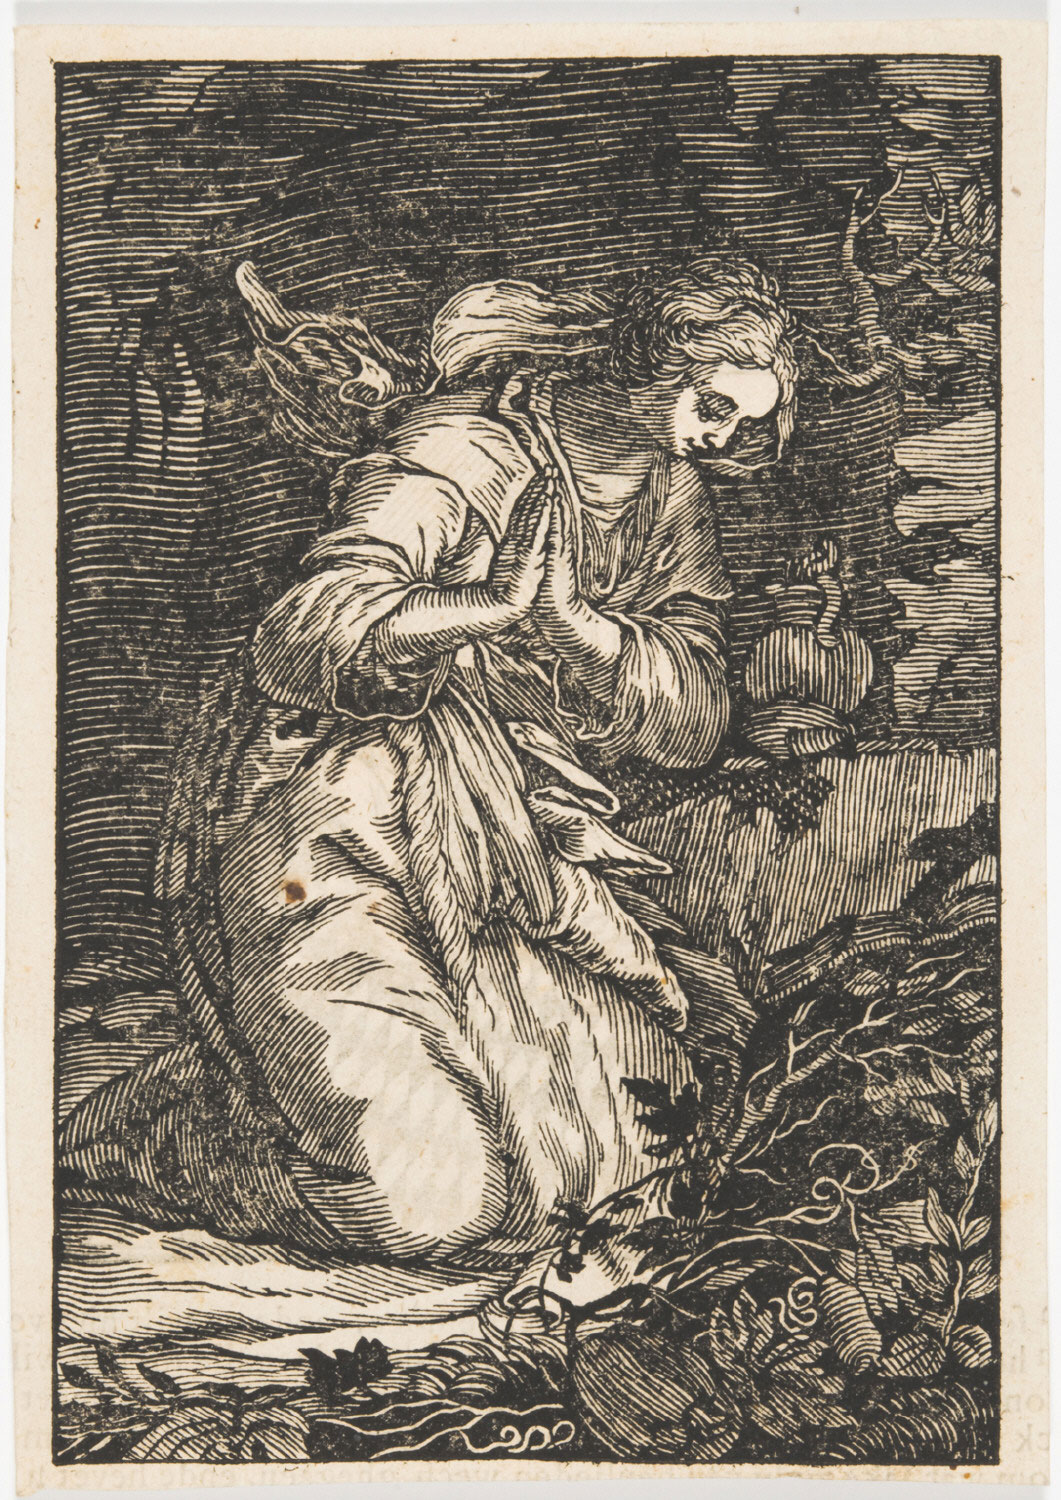 Biblical Scene with Woman Praying in the Wilderness